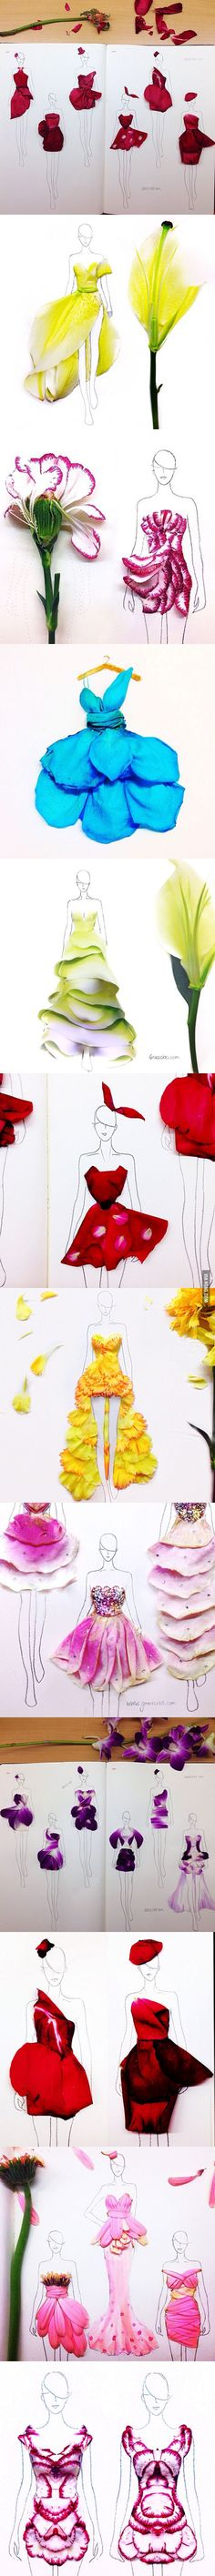 Funny pictures about Fashion Illustrations With Real Flower Petals As Clothing. Oh, and cool pics about Fashion Illustrations With Real Flower Petals As Clothing. Also, Fashion Illustrations With Real Flower Petals As Clothing photos. Fashion Illustrations, Fashion Sketches, Fashion Drawings, Design Illustrations, Arte Fashion, Illustration Mode, Real Flowers, Blooming Flowers, Flower Petals